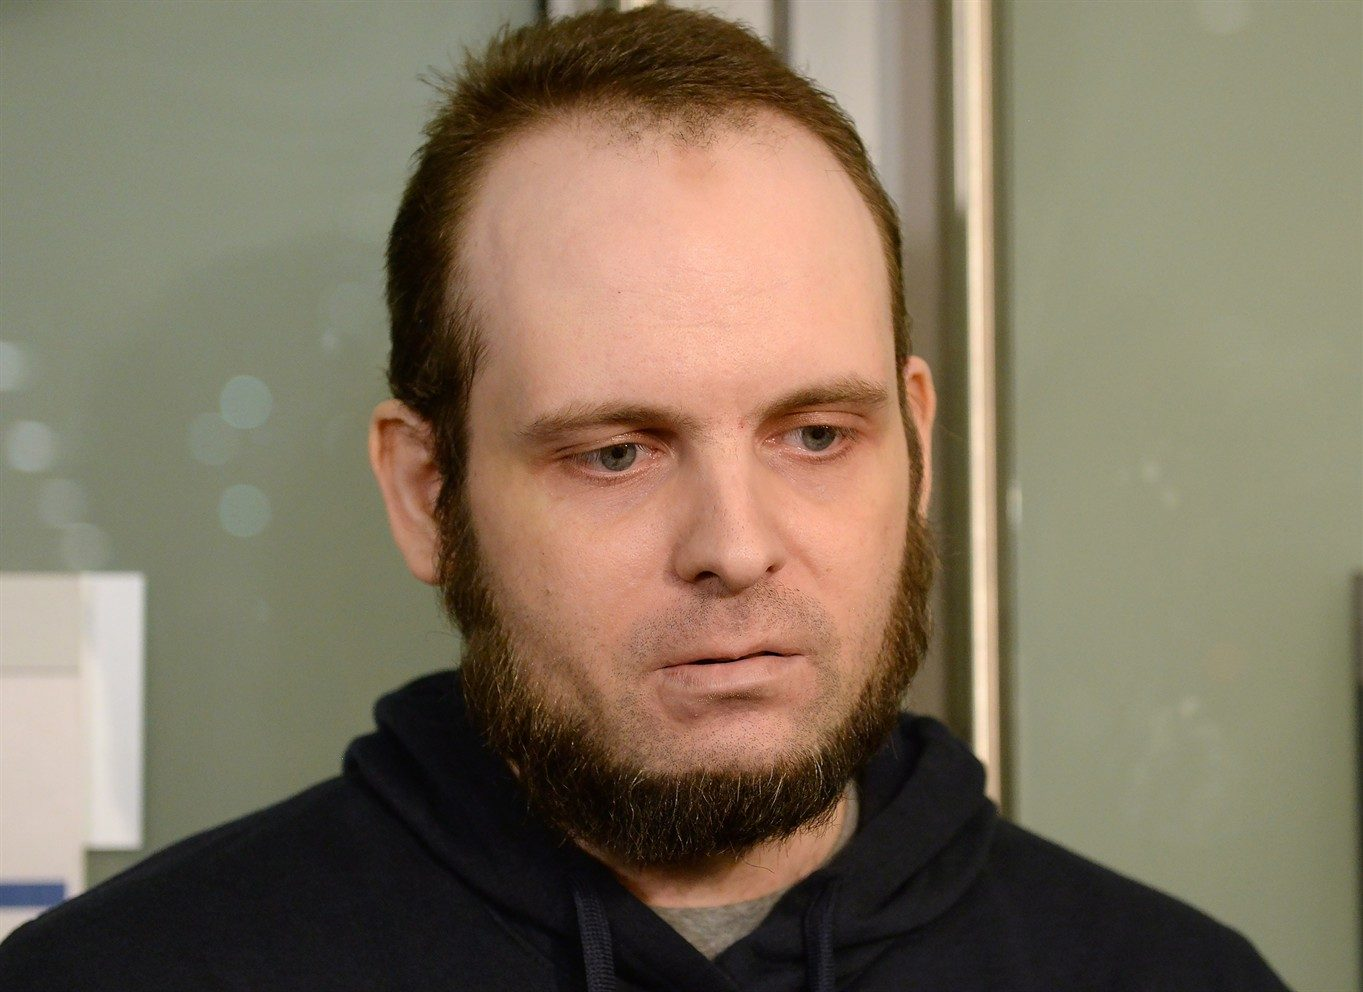 Former hostage Joshua Boyle to undergo psychiatric assessment